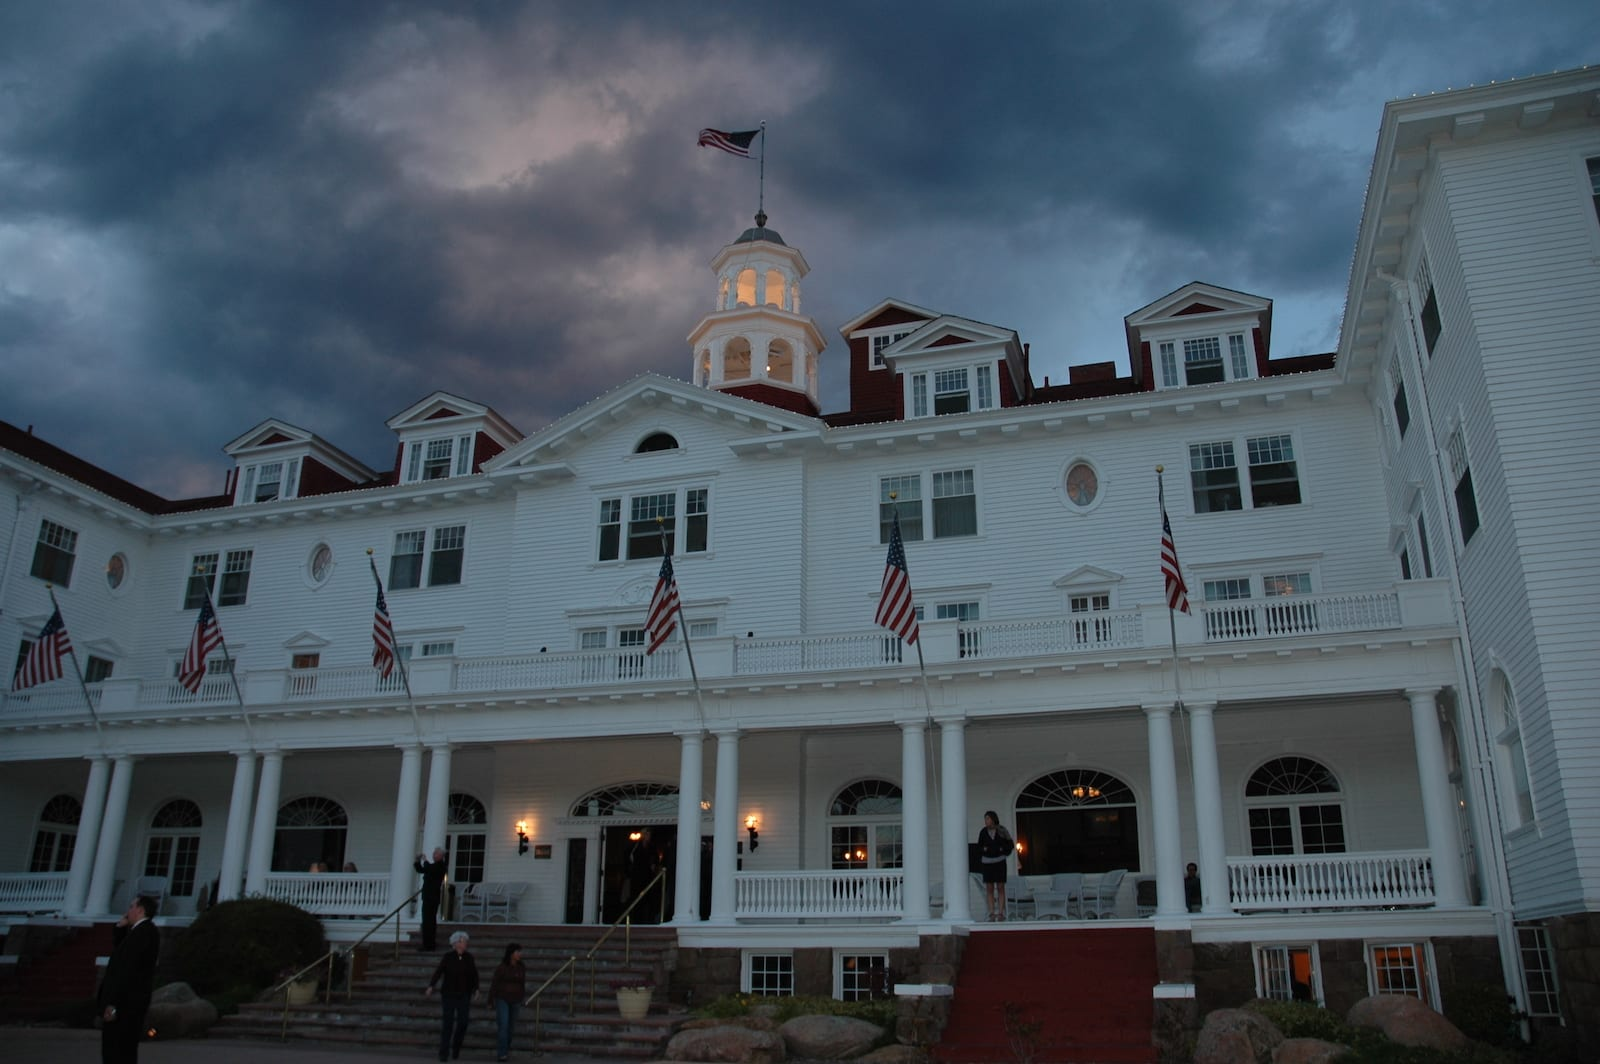 Haunted Stanley Hotel Night Sky Clouds Estes Park